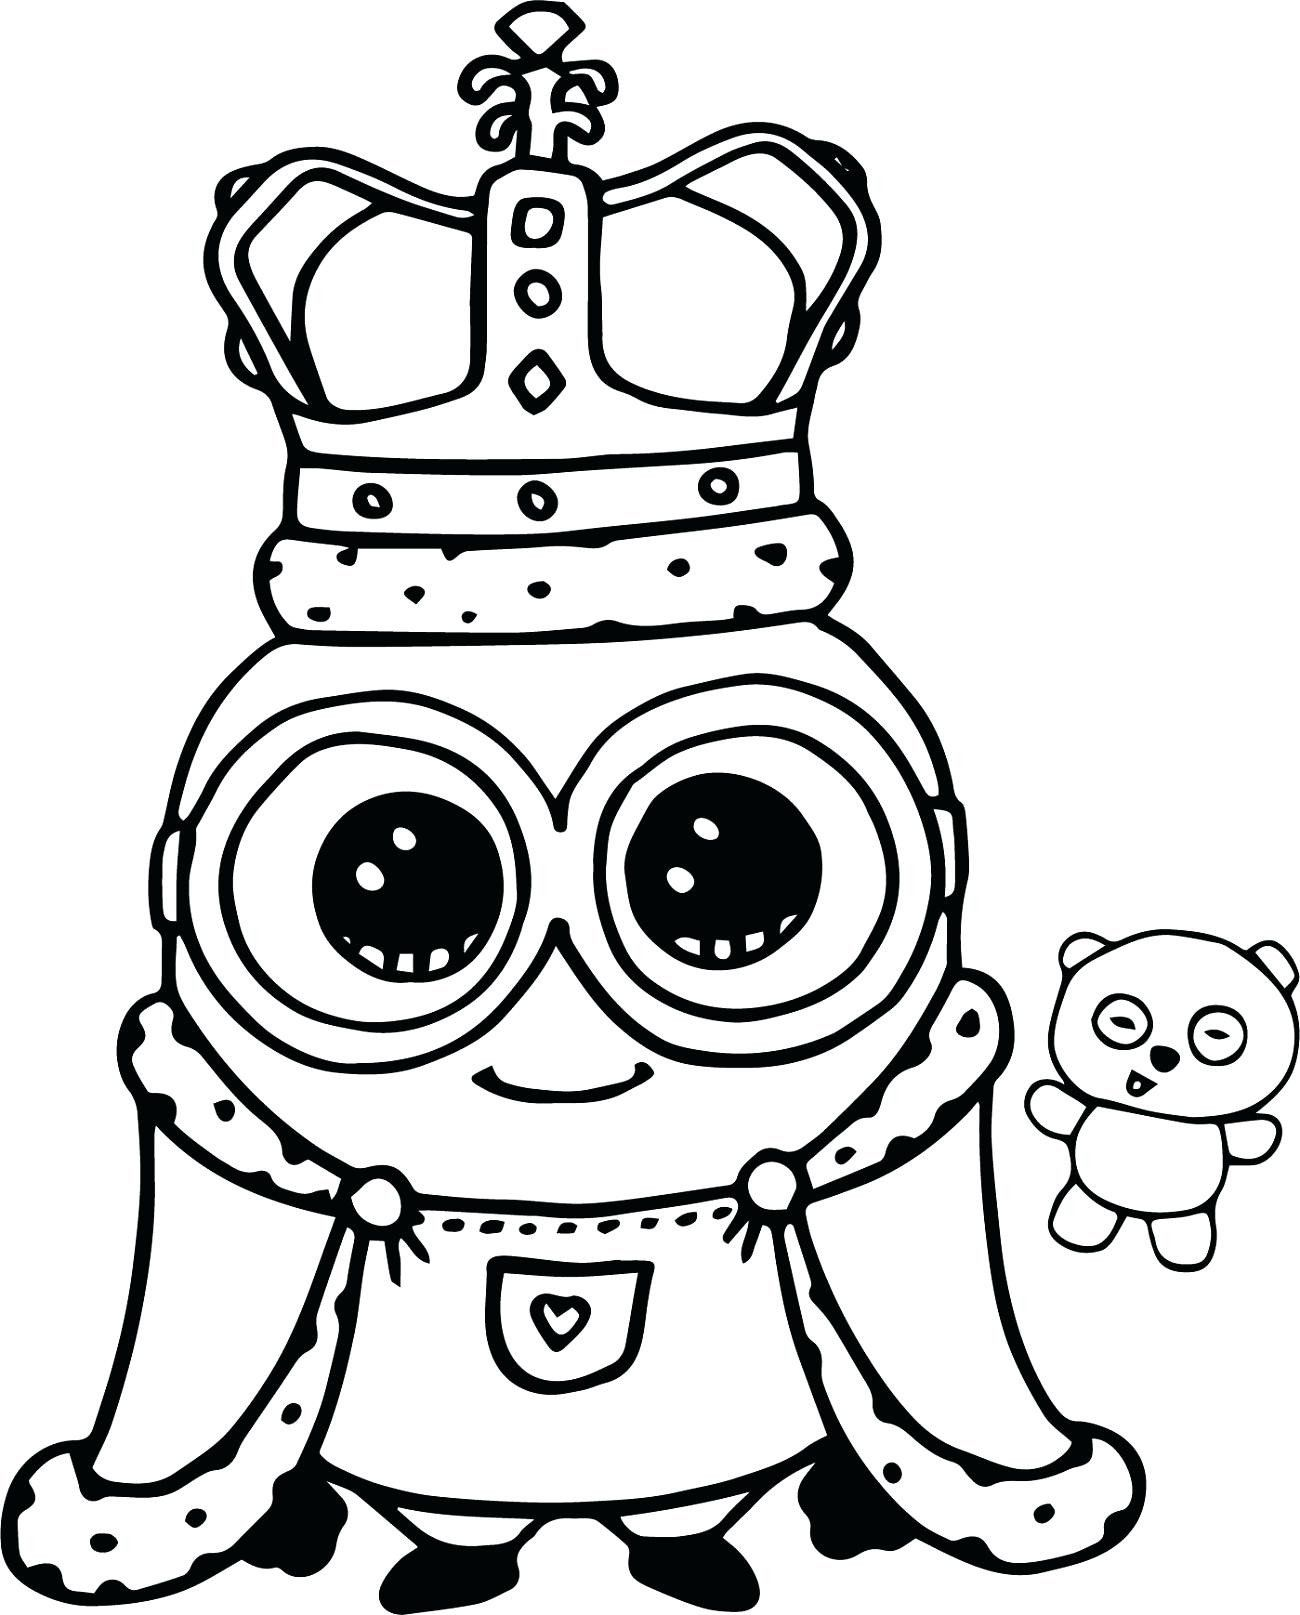 Pikachu And Minion Coloring Pages Designs Trend